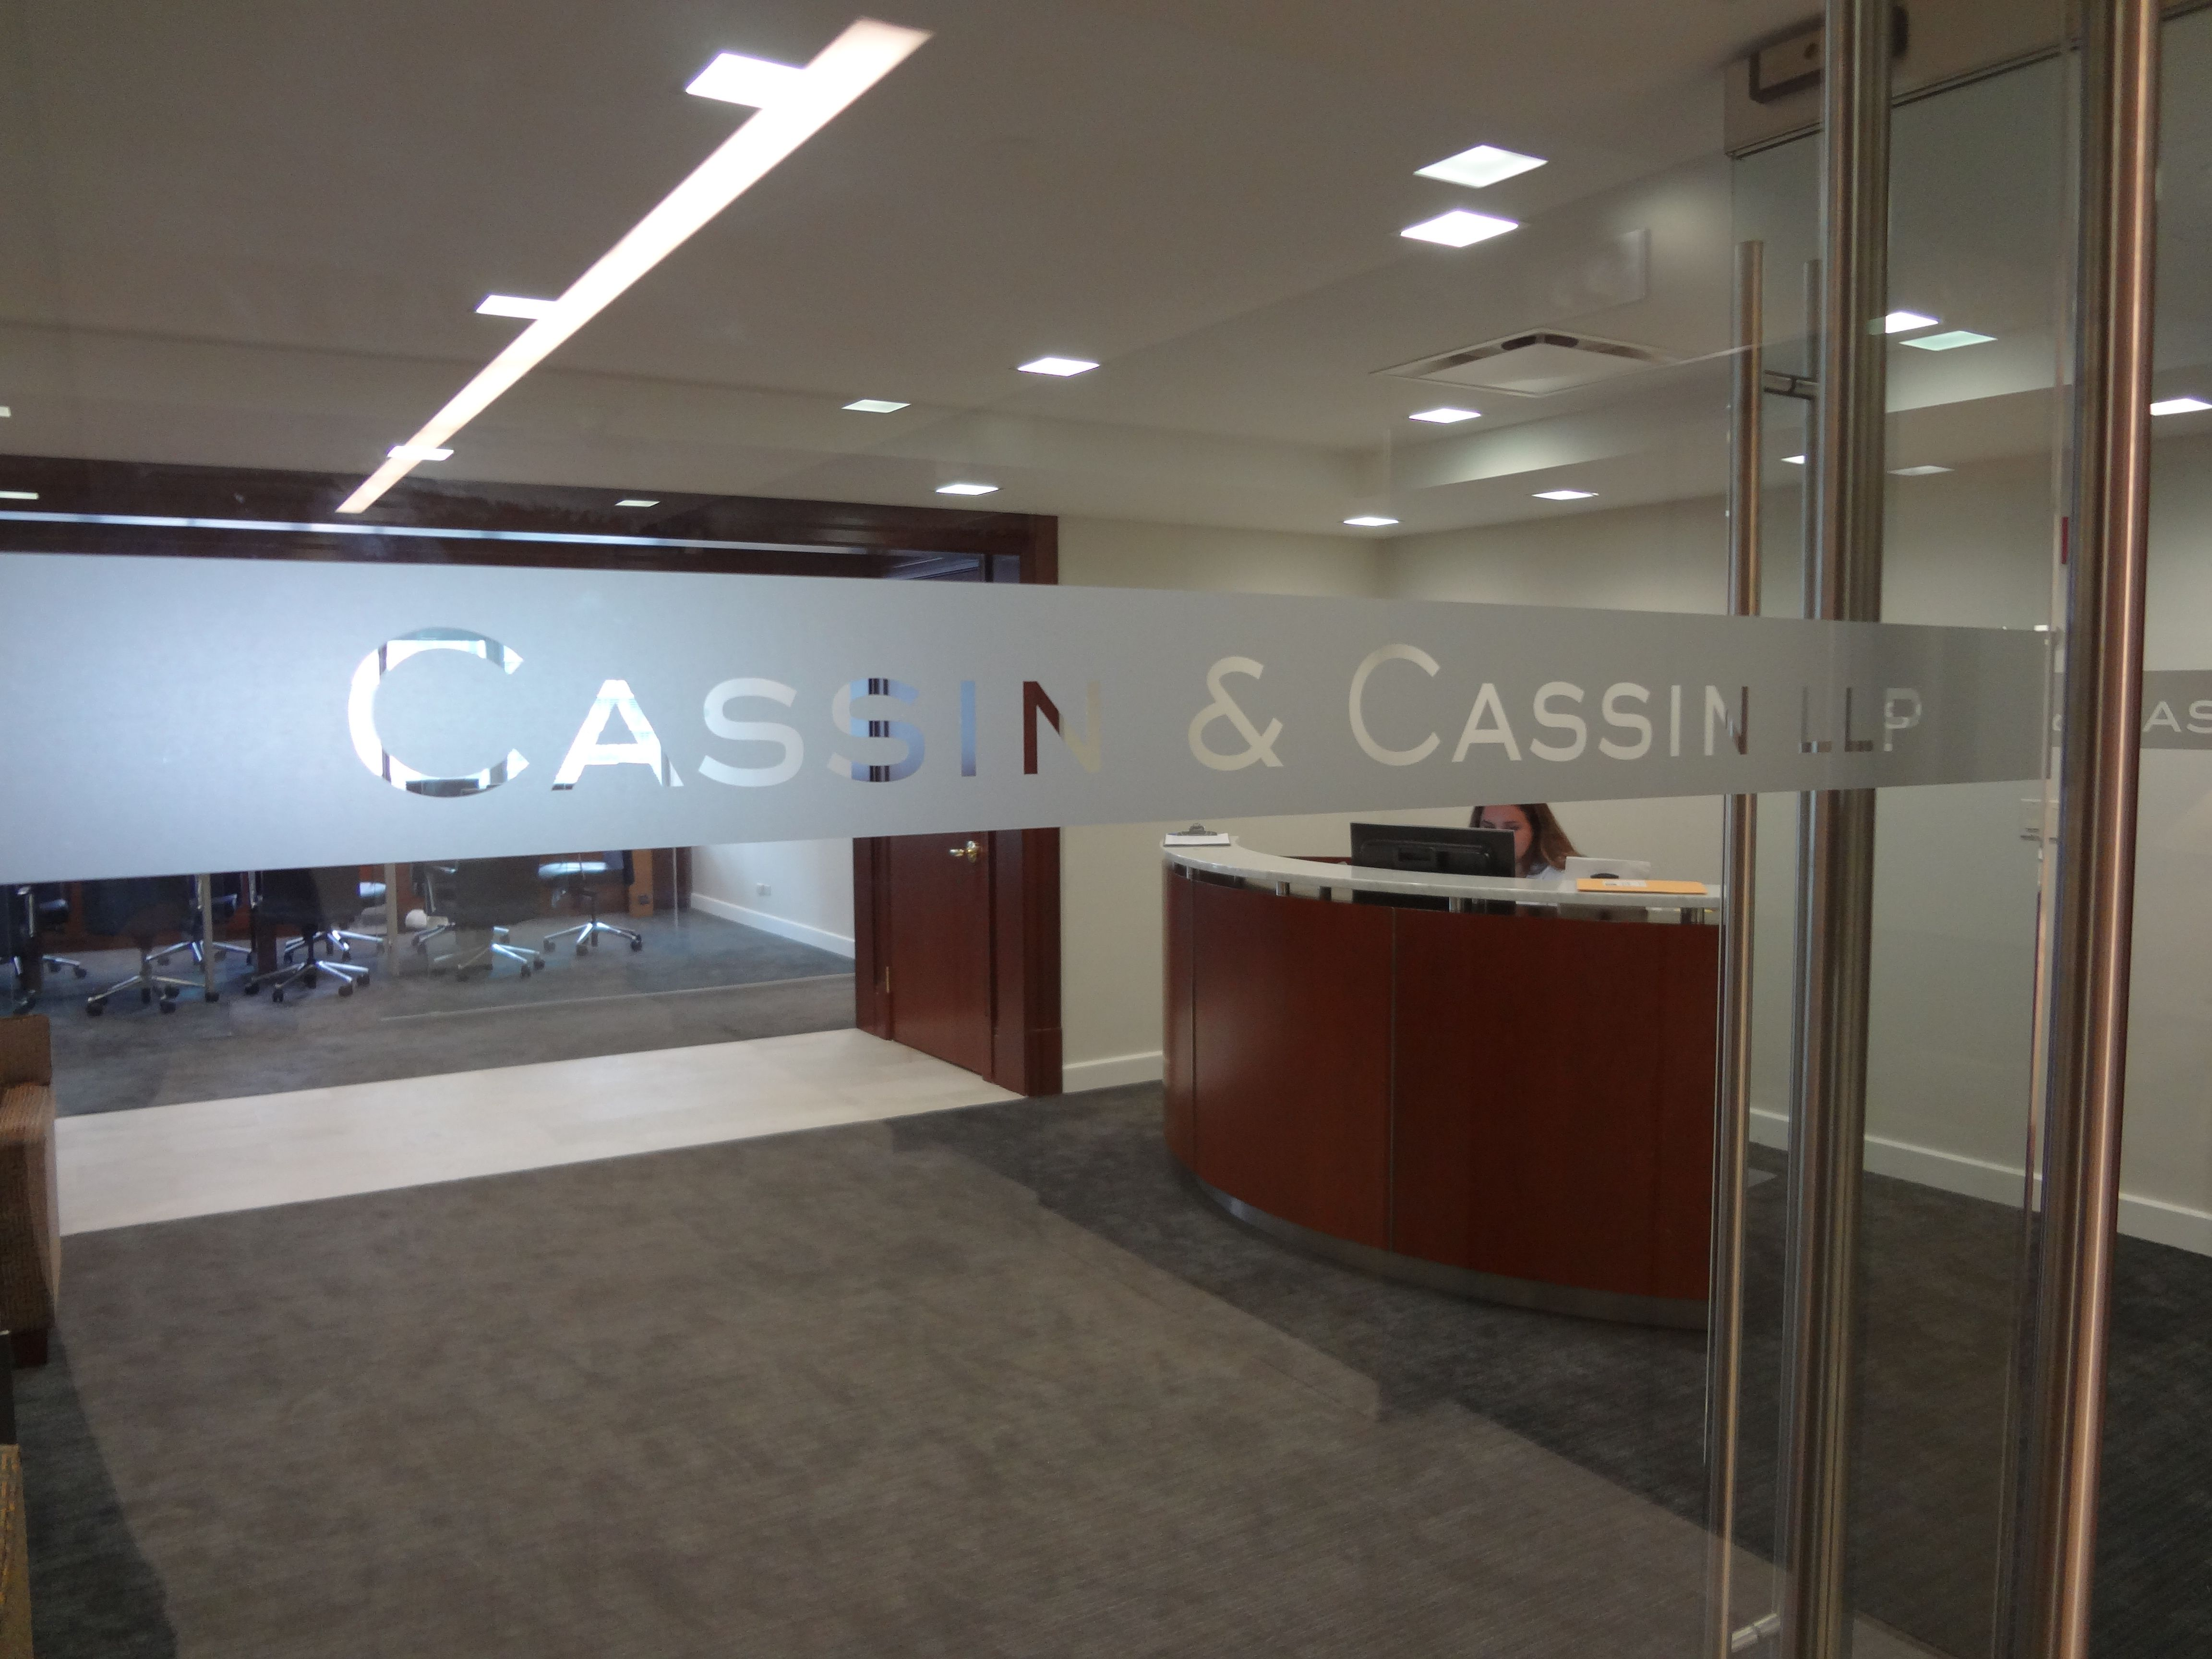 We Specialize In Custom Frosted Vinyl Signage New York NY Visit Our Website Below To Contact Us For A Free Consultation